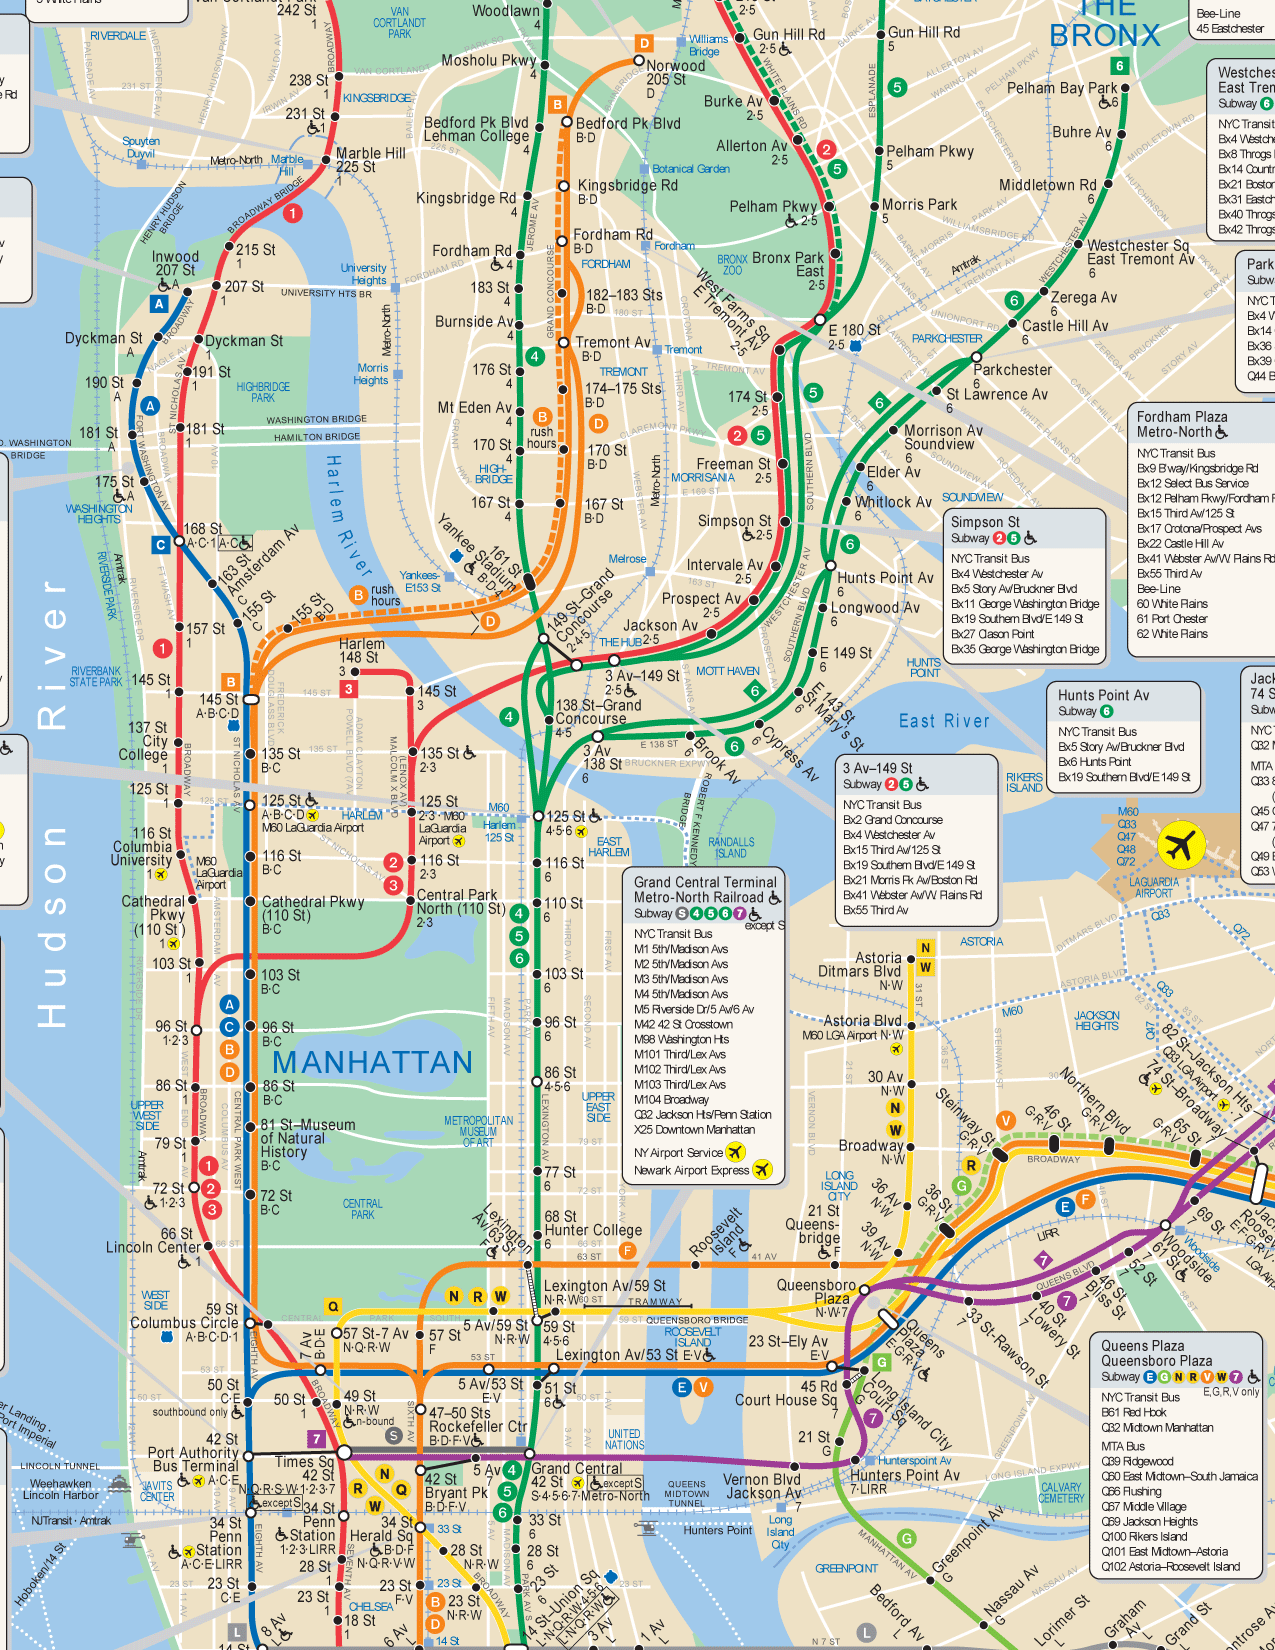 Nyc Uptown Subway Map.New York Private Tours Nyc Tour Guide Vip Private Tours Ny